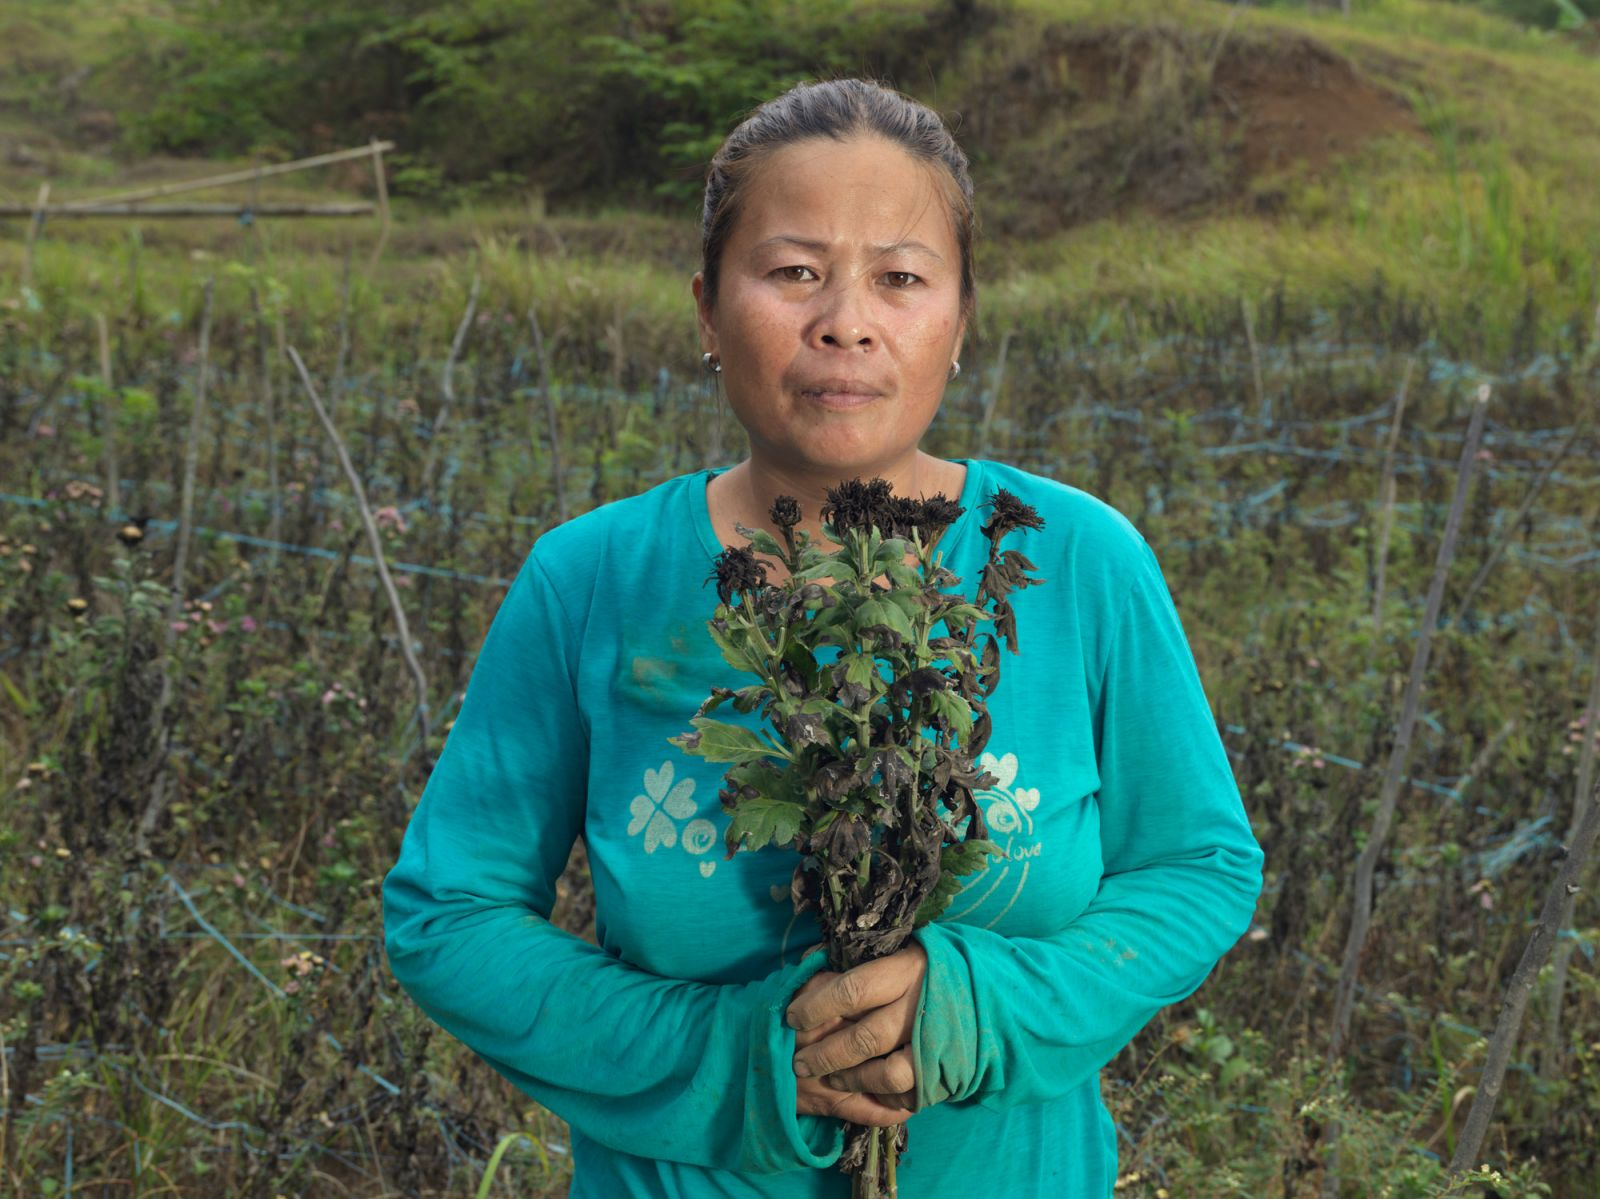 Wilma Delima holds dead flowers due to a failed harvest in Philippines. She wants to use the money for selling flowers to invest in her children's education. (Photo: Peter Caton/CARE)